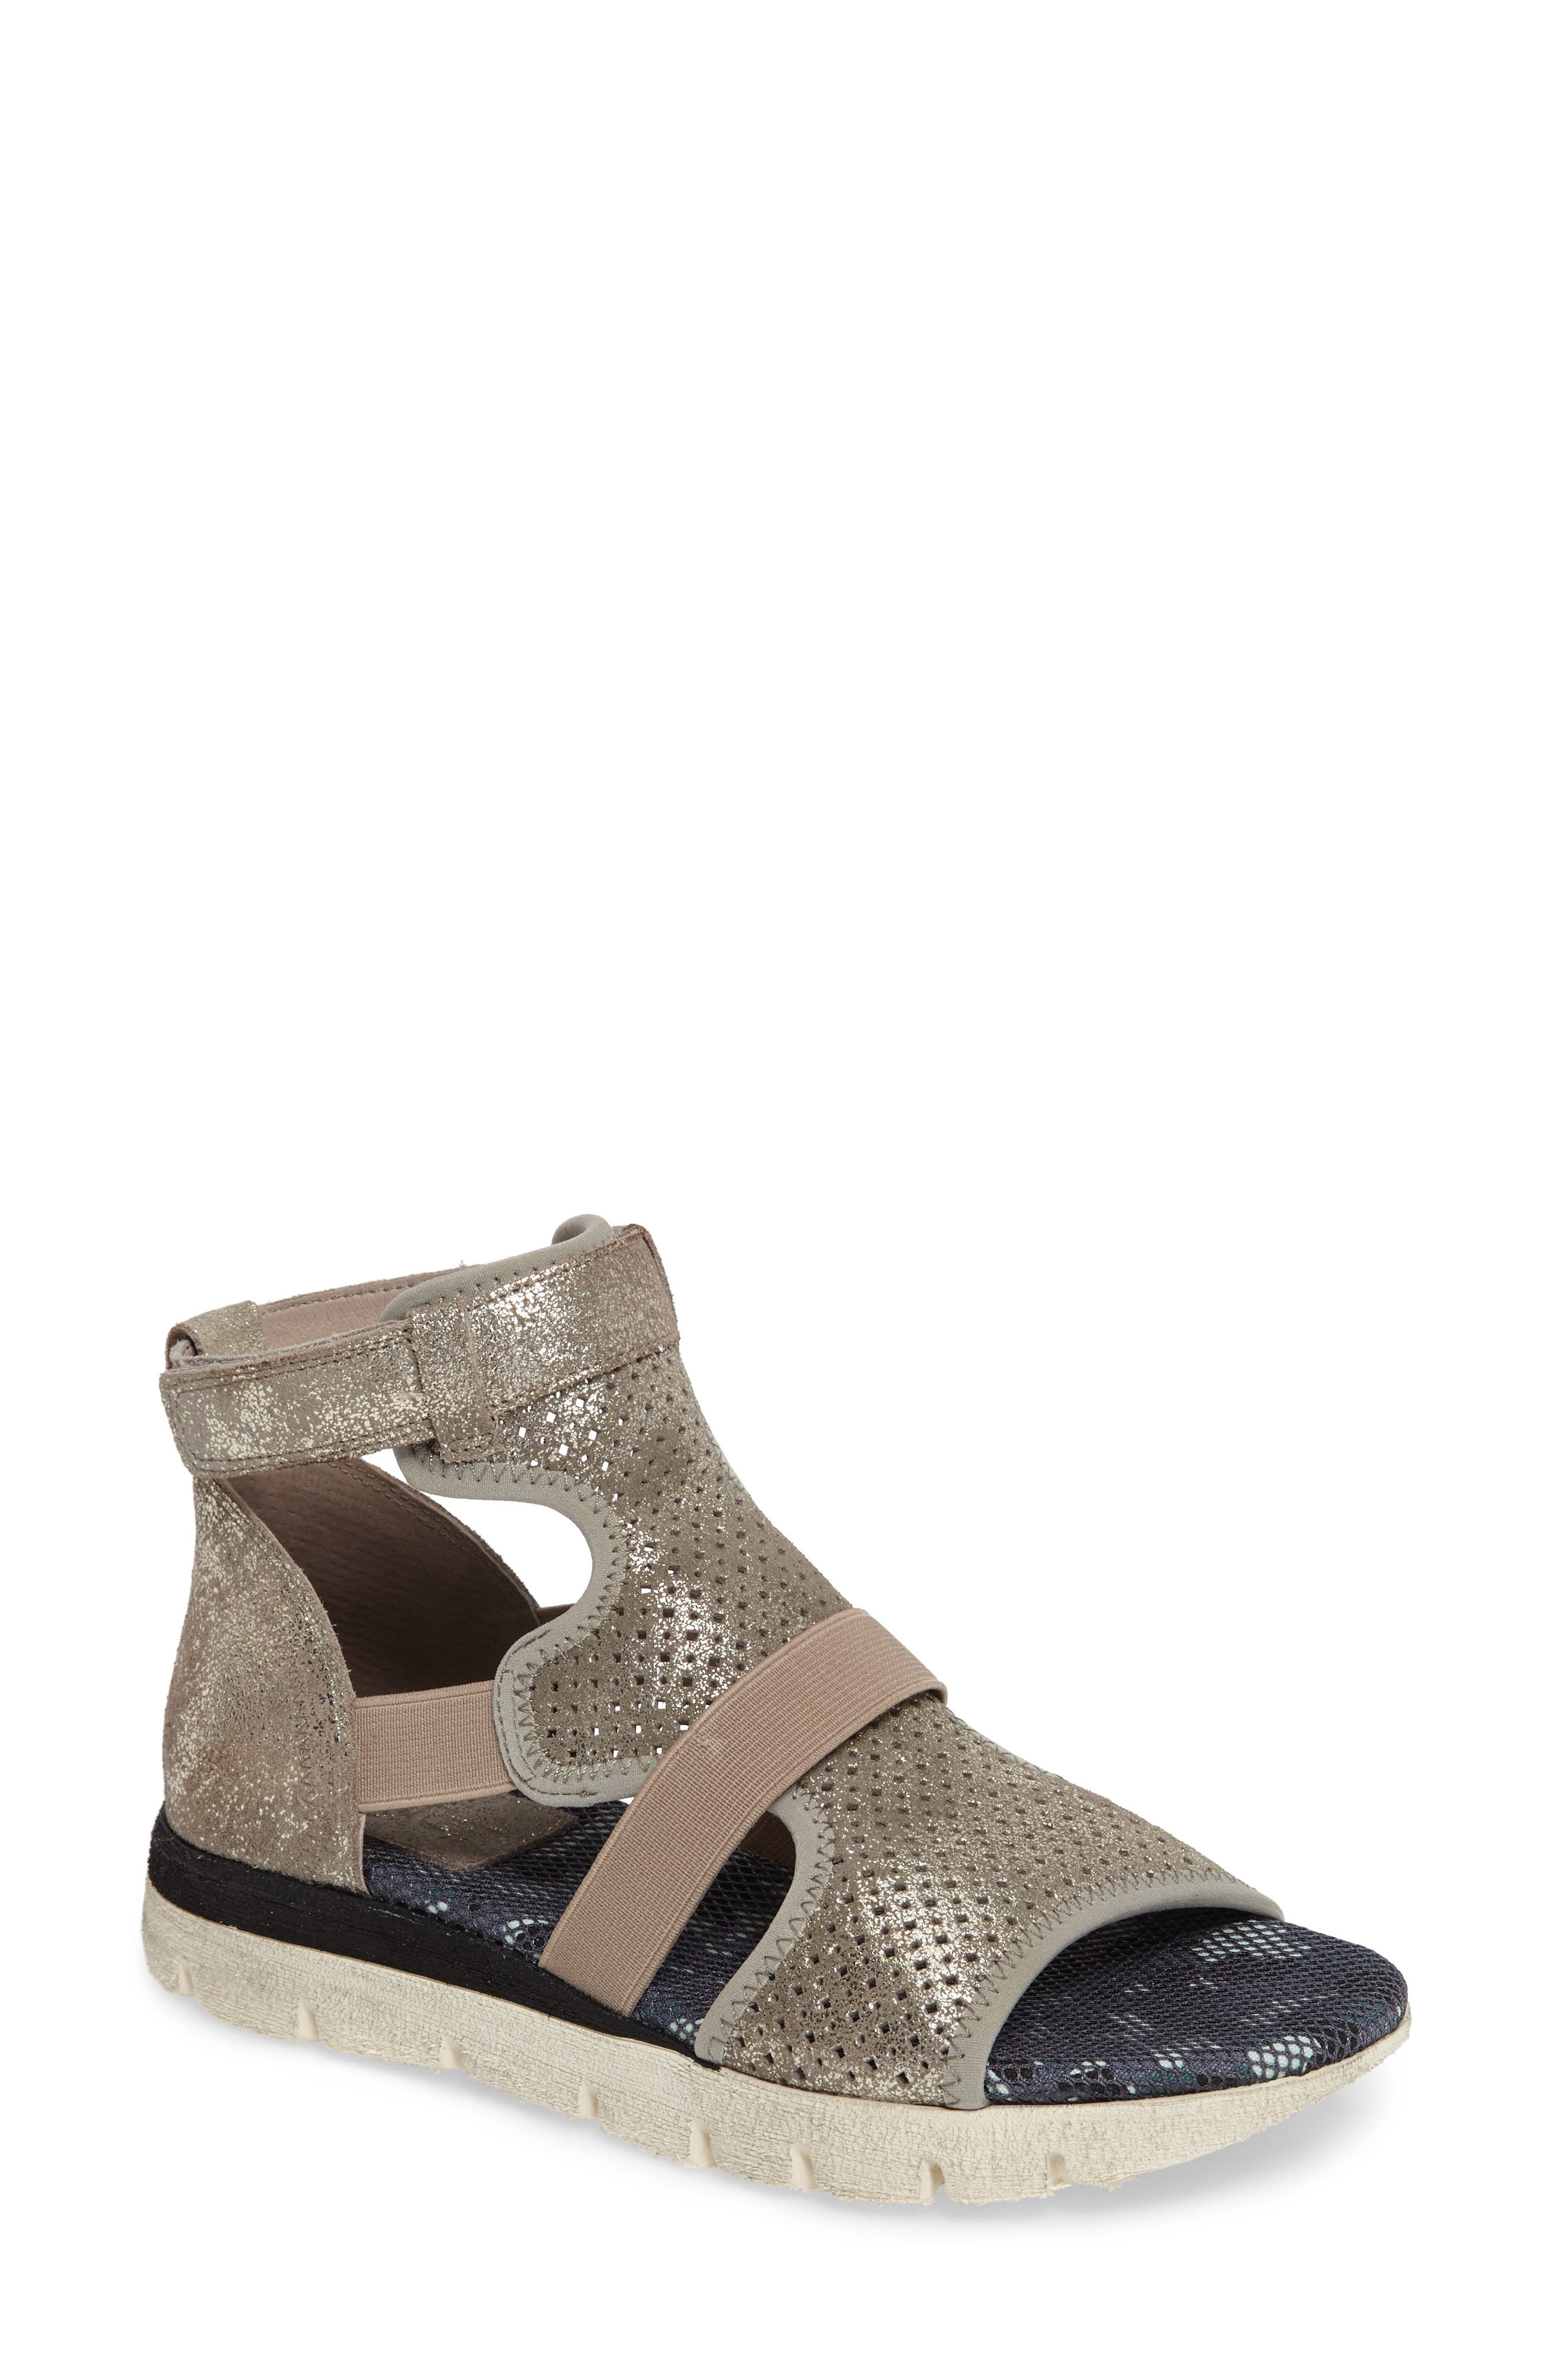 Astro Perforated Gladiator Sandal,                             Main thumbnail 2, color,